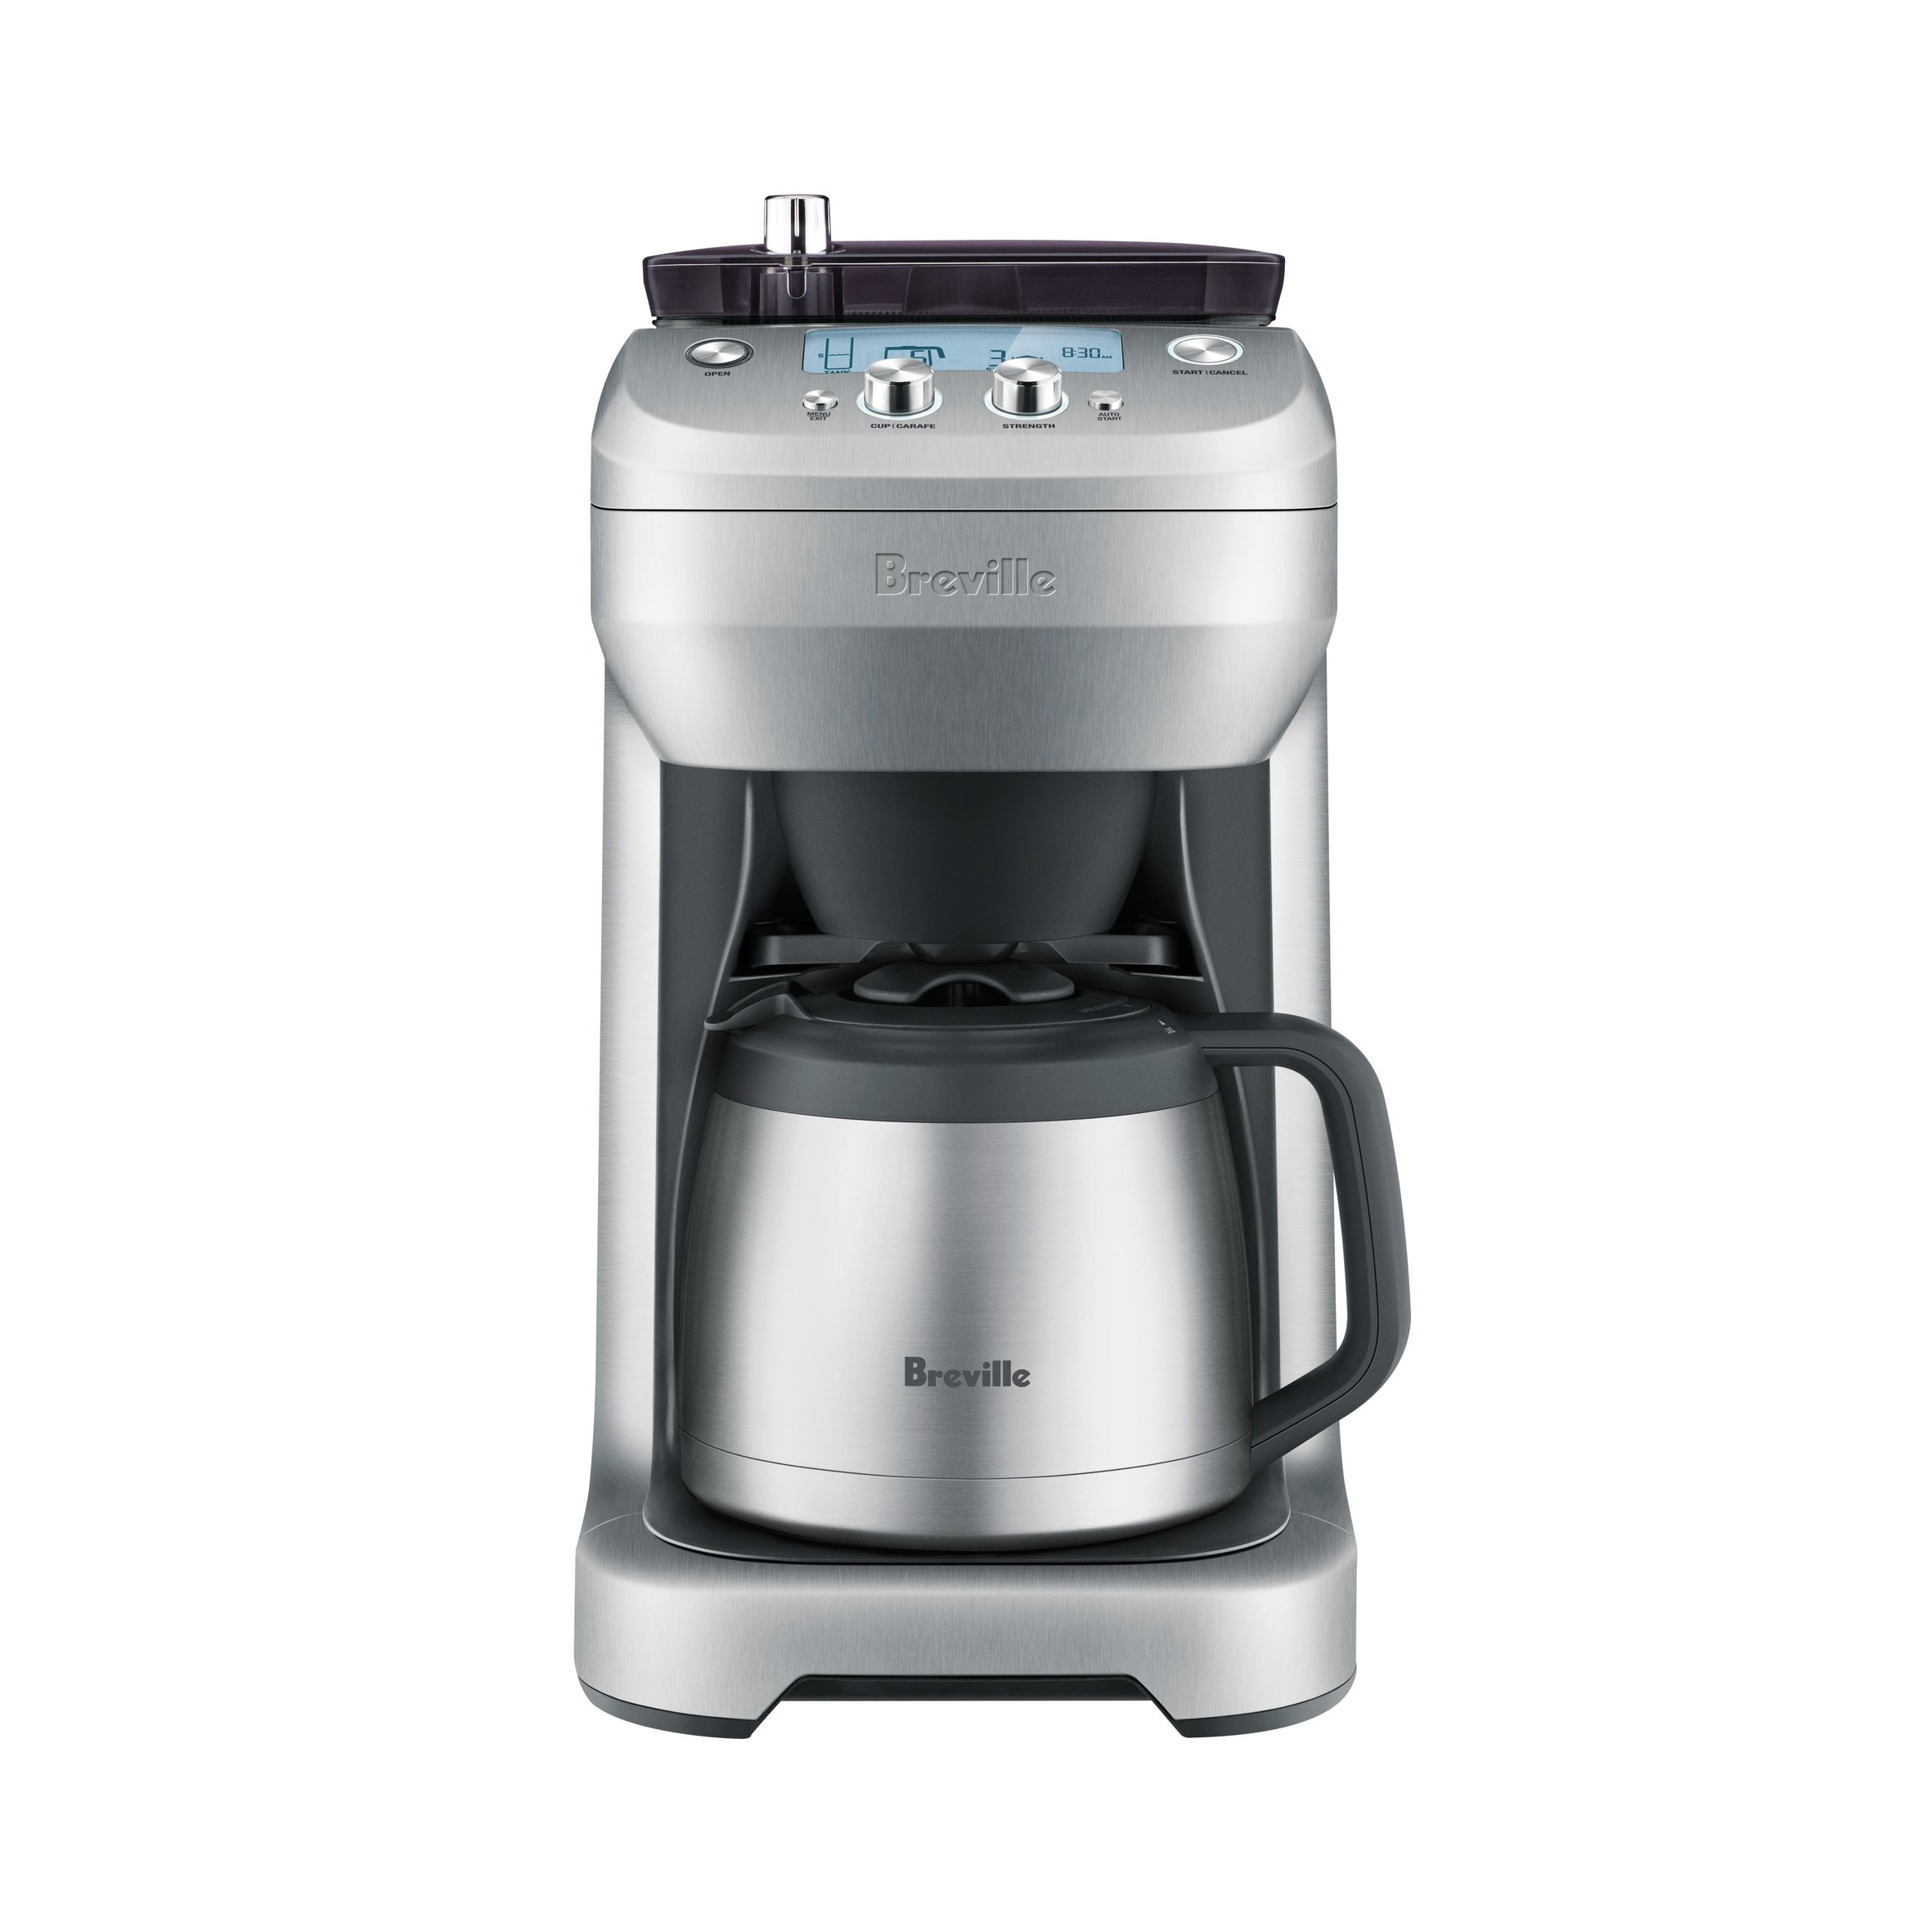 Breville BDC650BSS Control Brushed Stainless